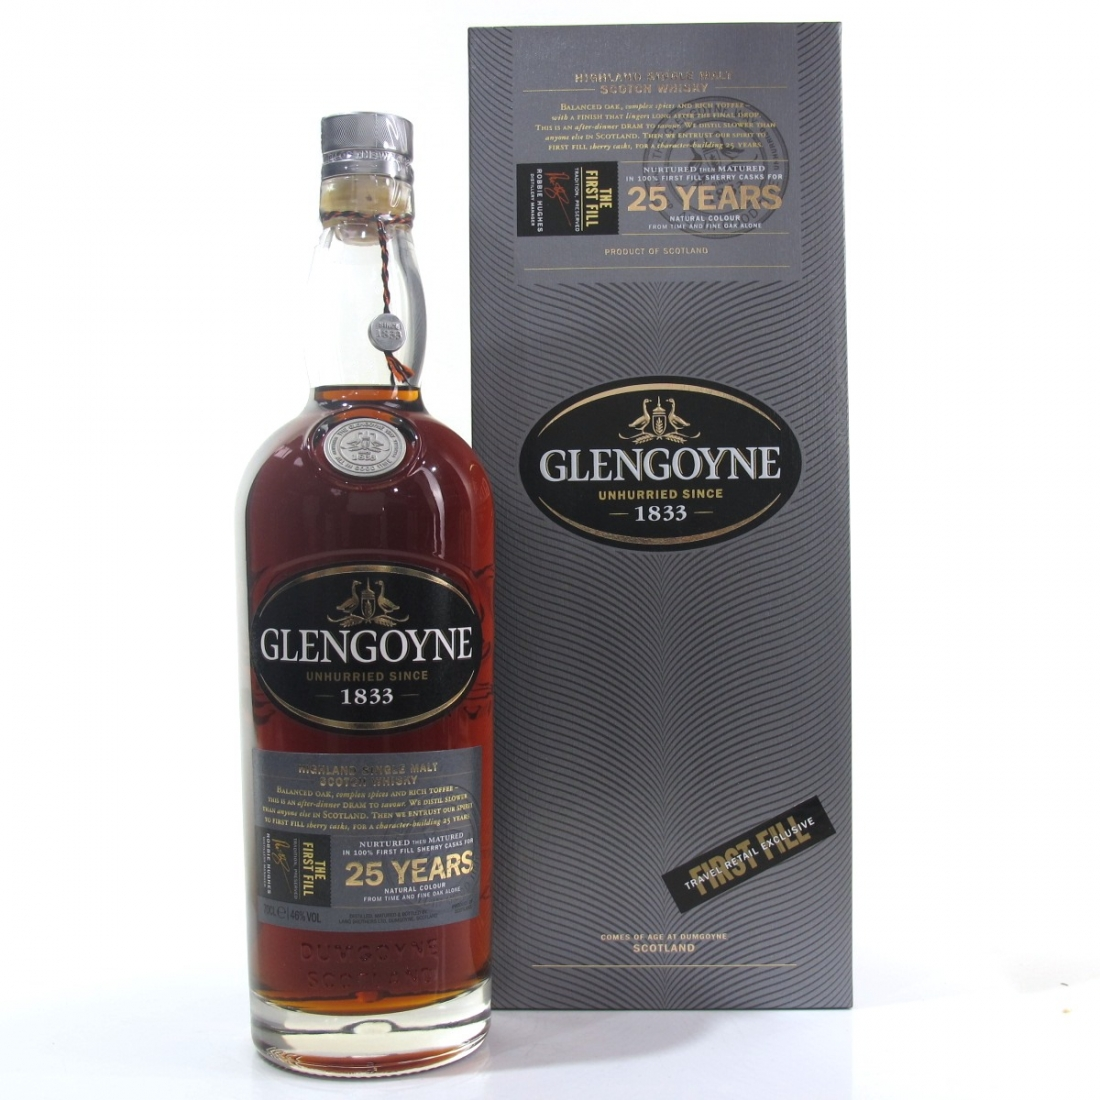 Glengoyne 25 Year Old / The First Fill